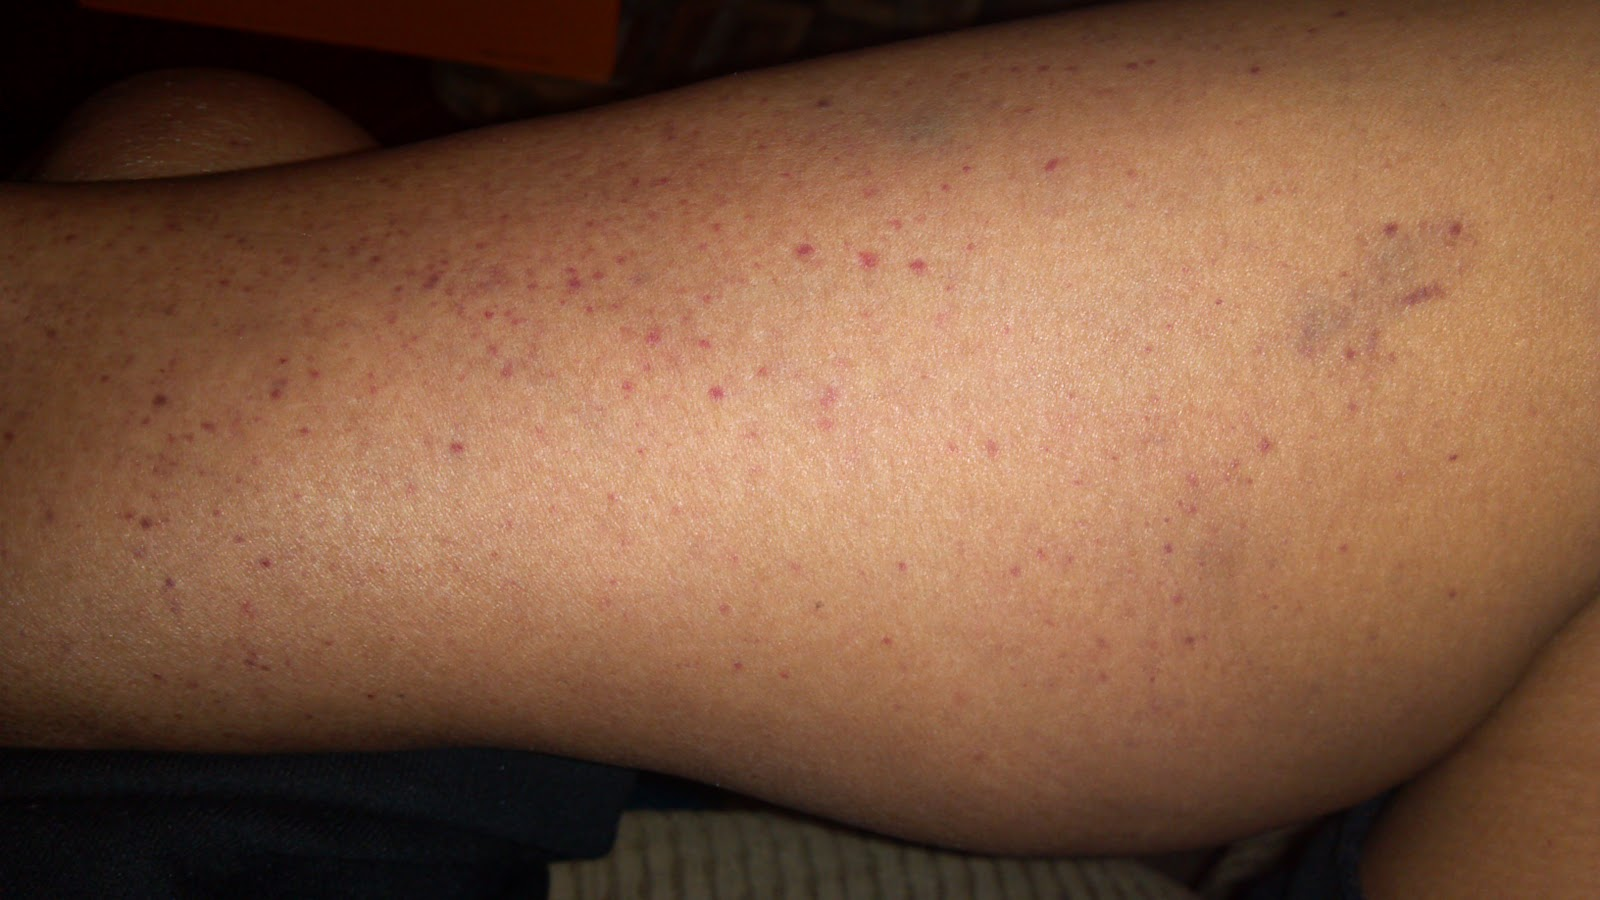 this is my left inner leg. The spots cover mainly below my knee and ...